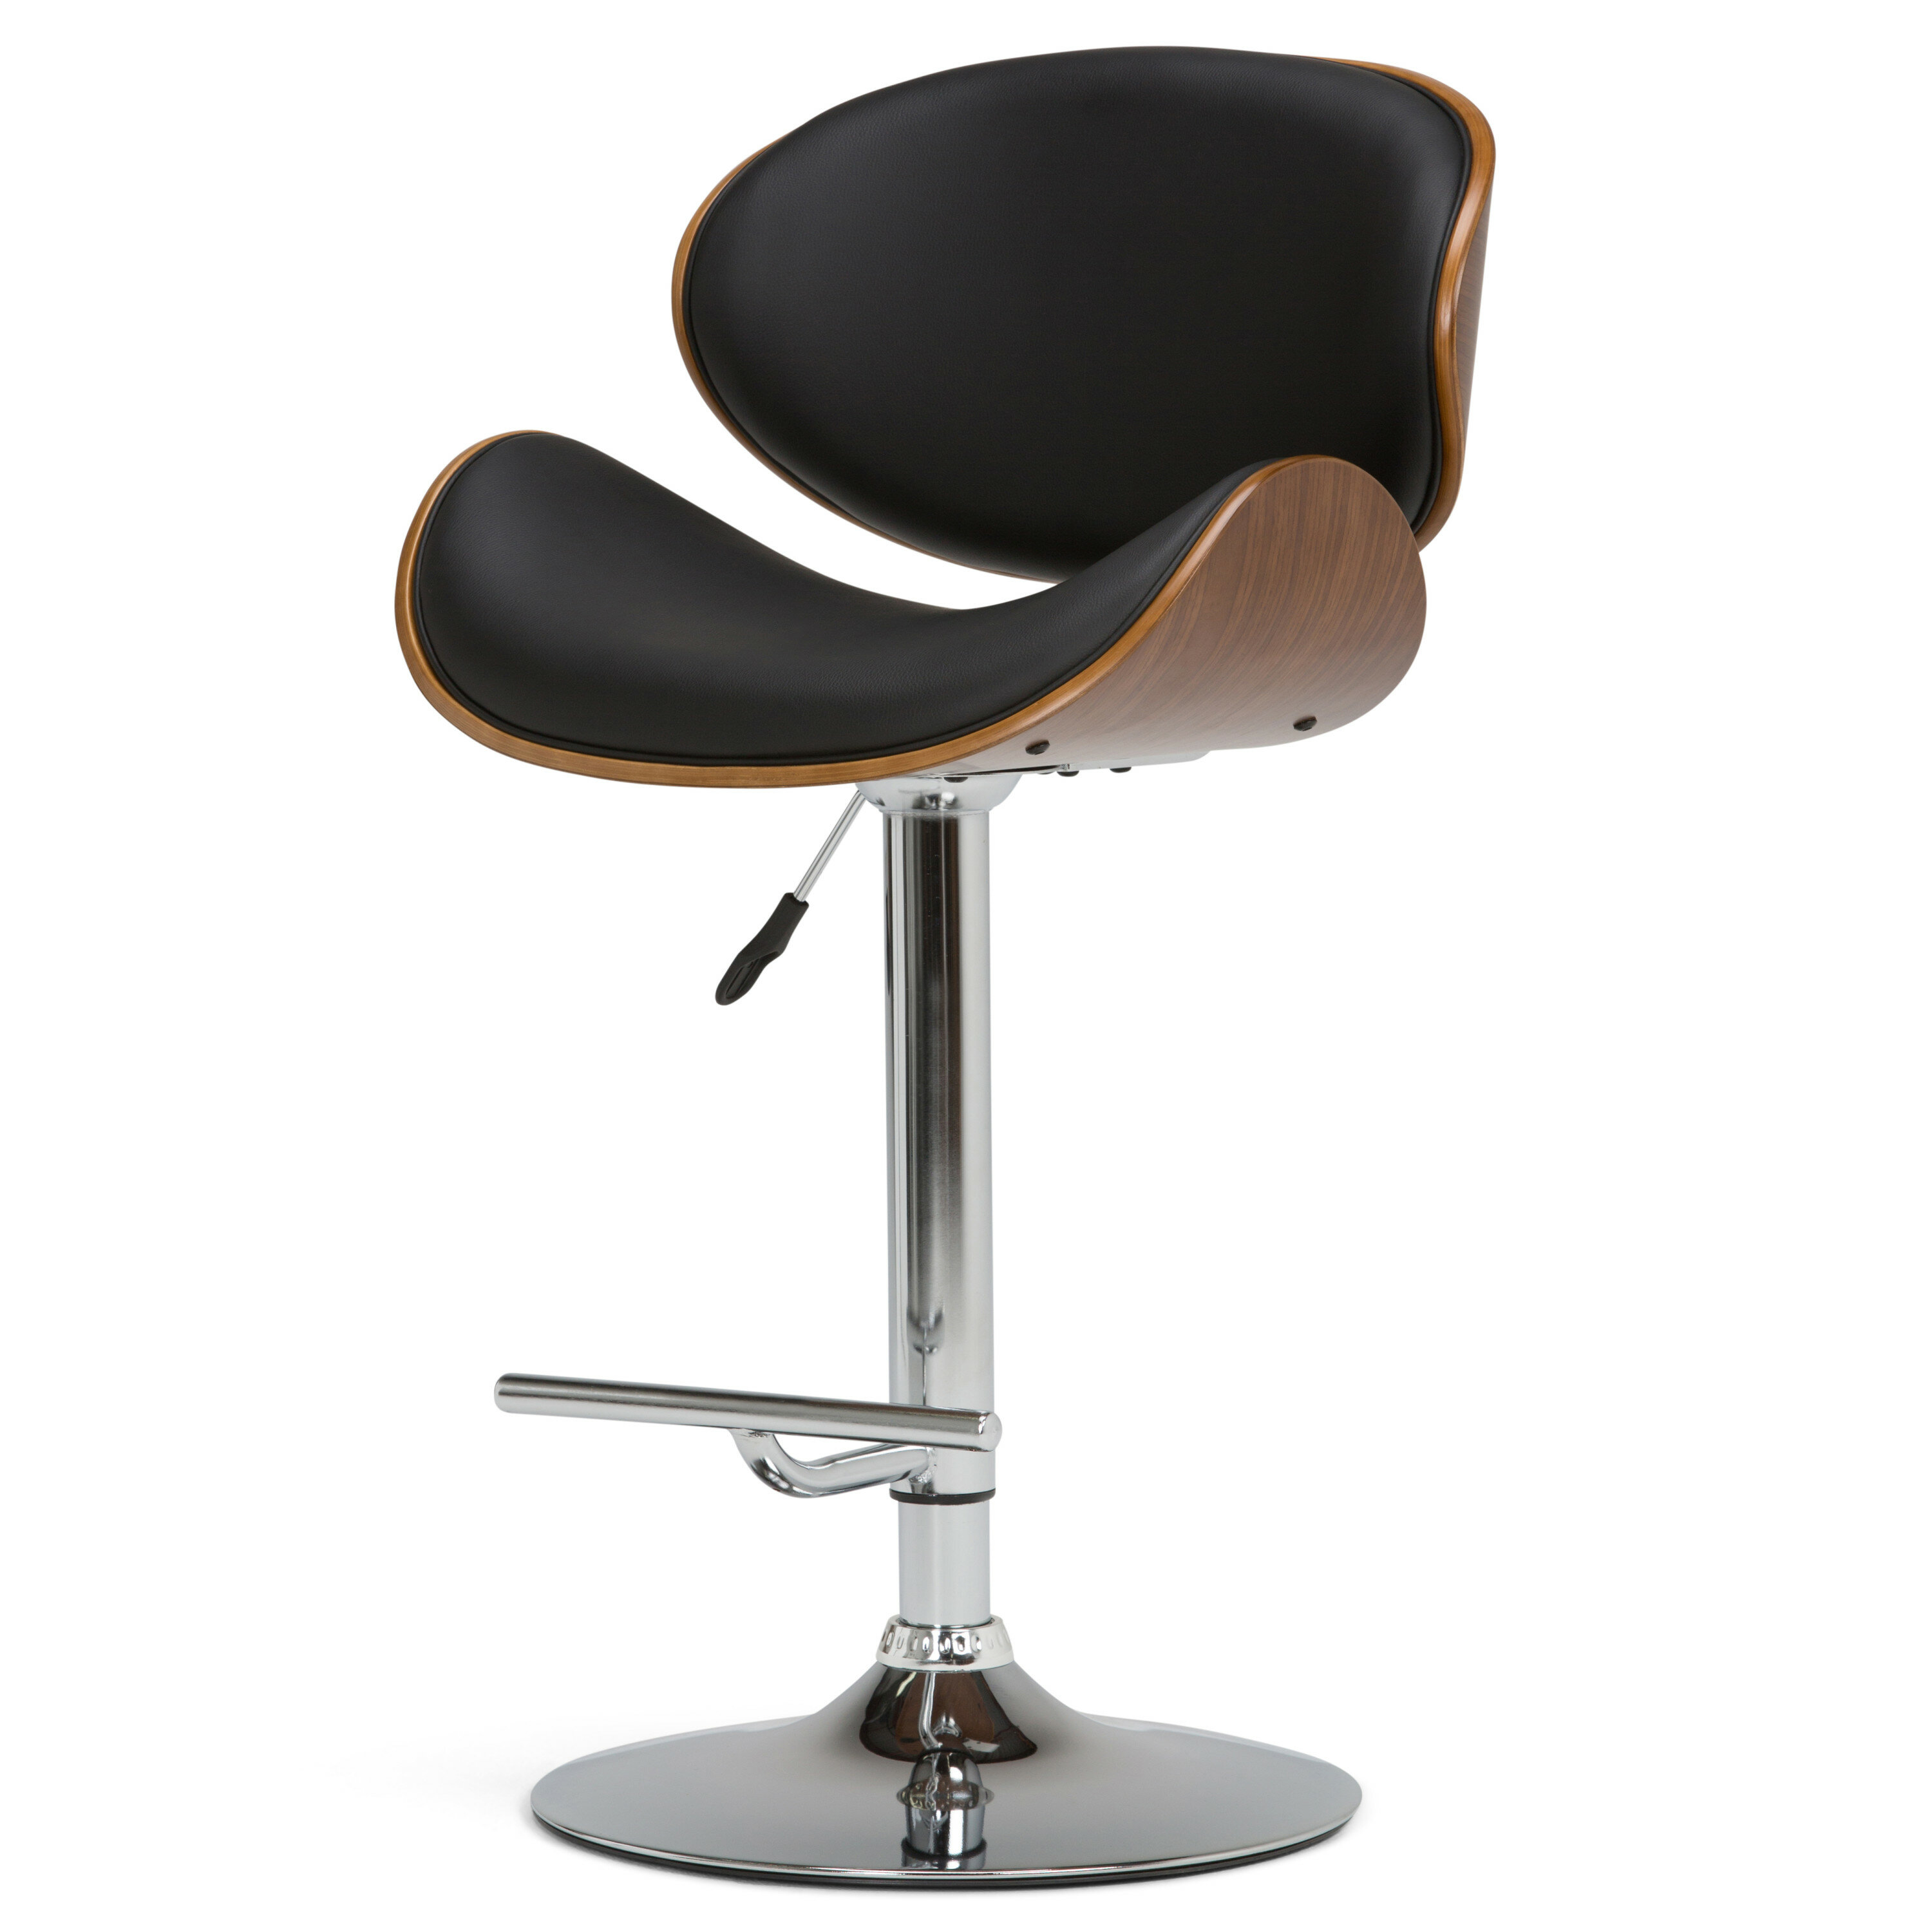 Pleasant George Oliver Harbison Adjustable Height Swivel Bar Stool Caraccident5 Cool Chair Designs And Ideas Caraccident5Info